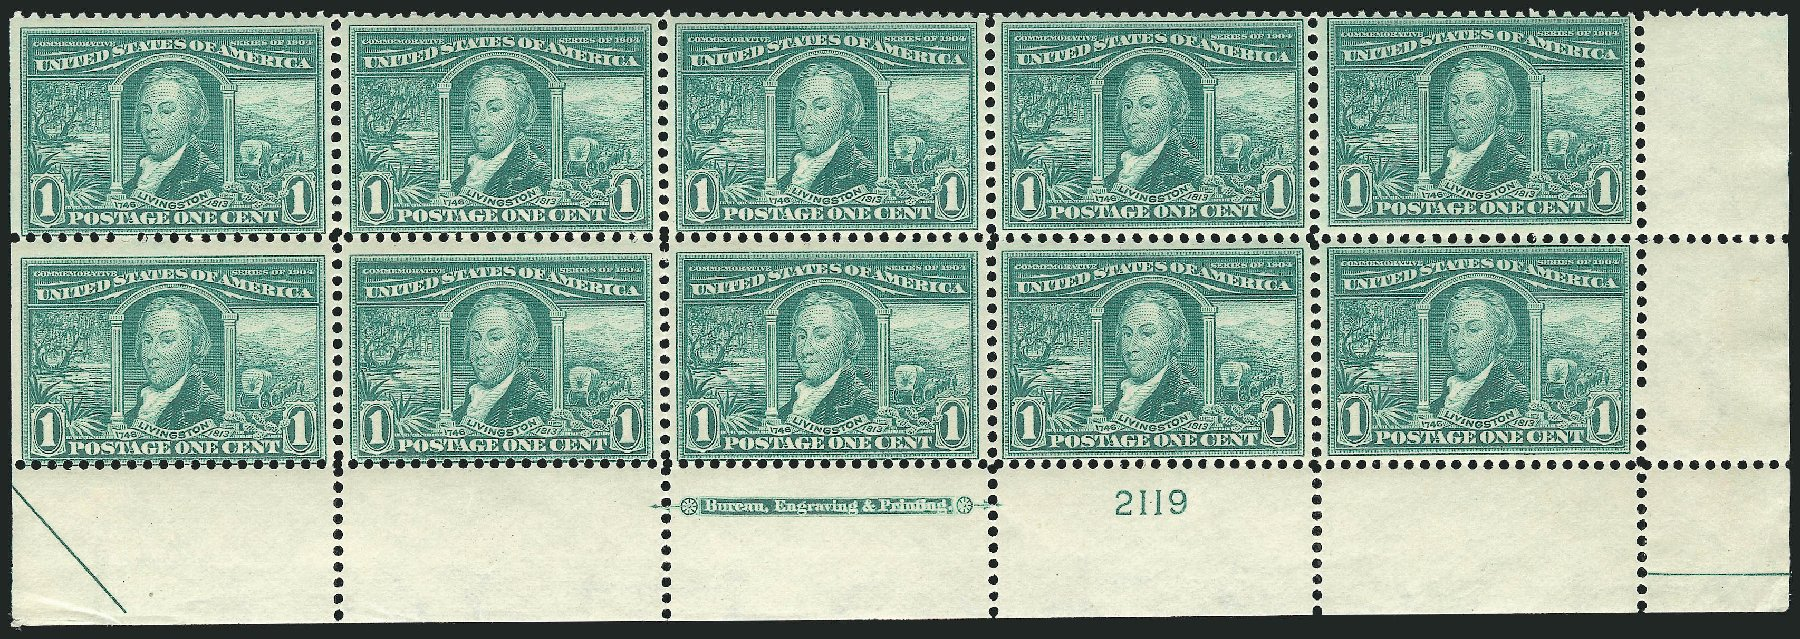 Cost of US Stamps Scott Cat. # 323 - 1c 1904 Louisiana Purchase Exposition. Robert Siegel Auction Galleries, Jul 2014, Sale 1077, Lot 228